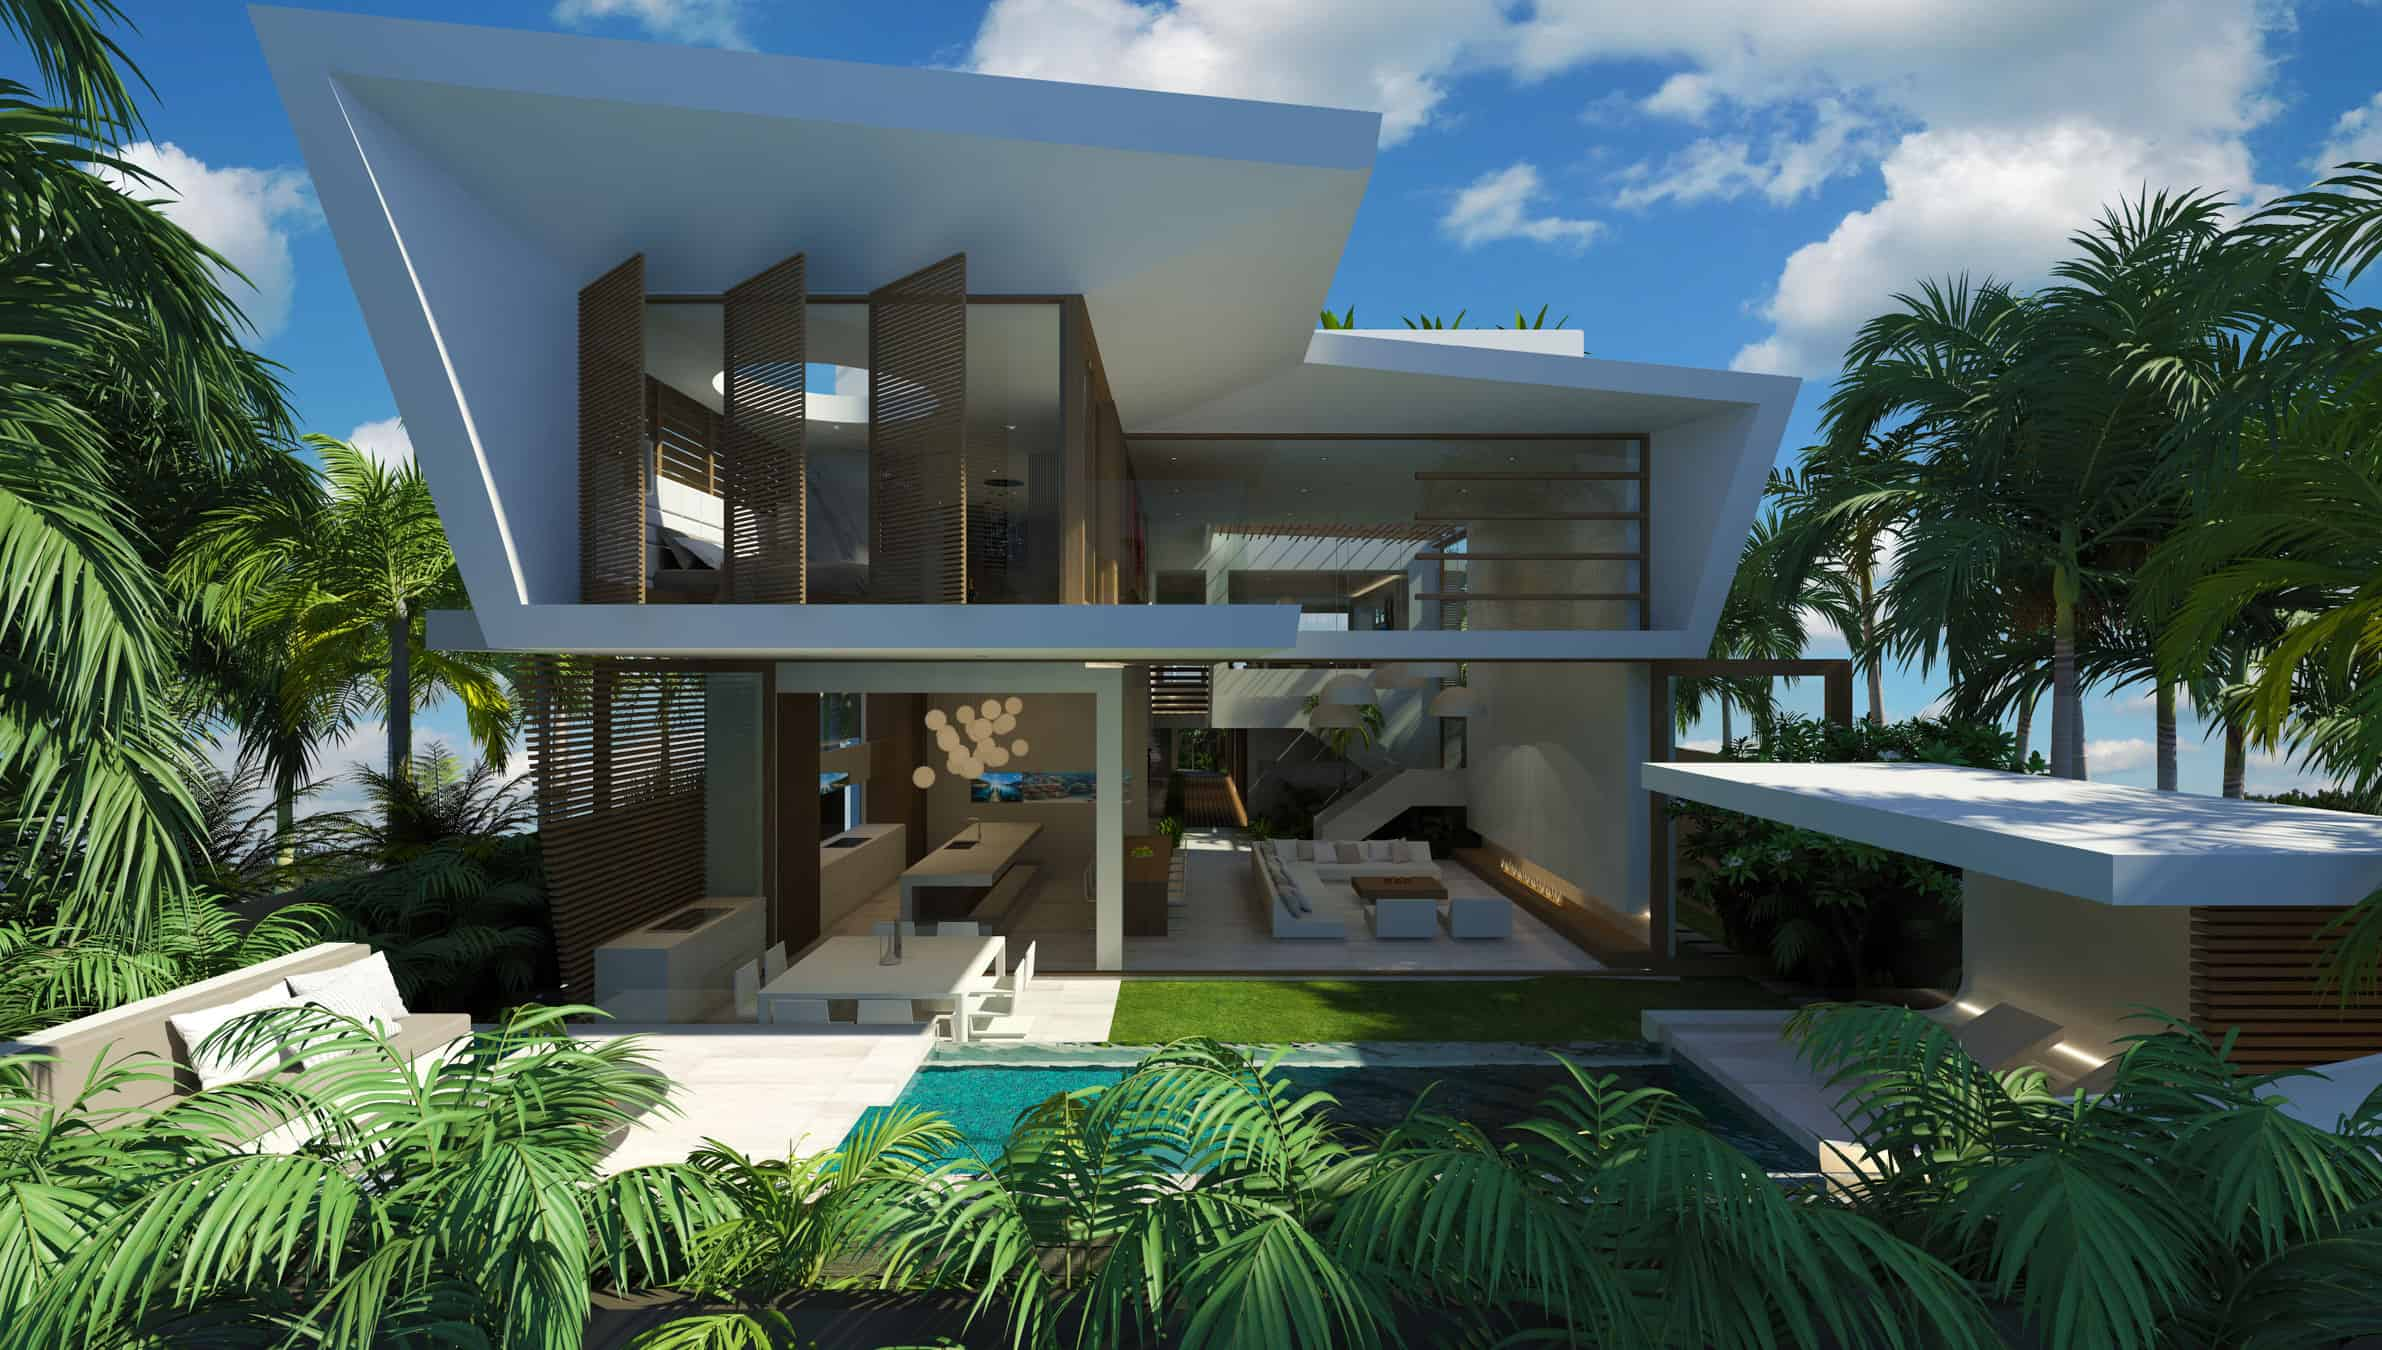 Modern beach house chris clout design for Coastal beach house designs